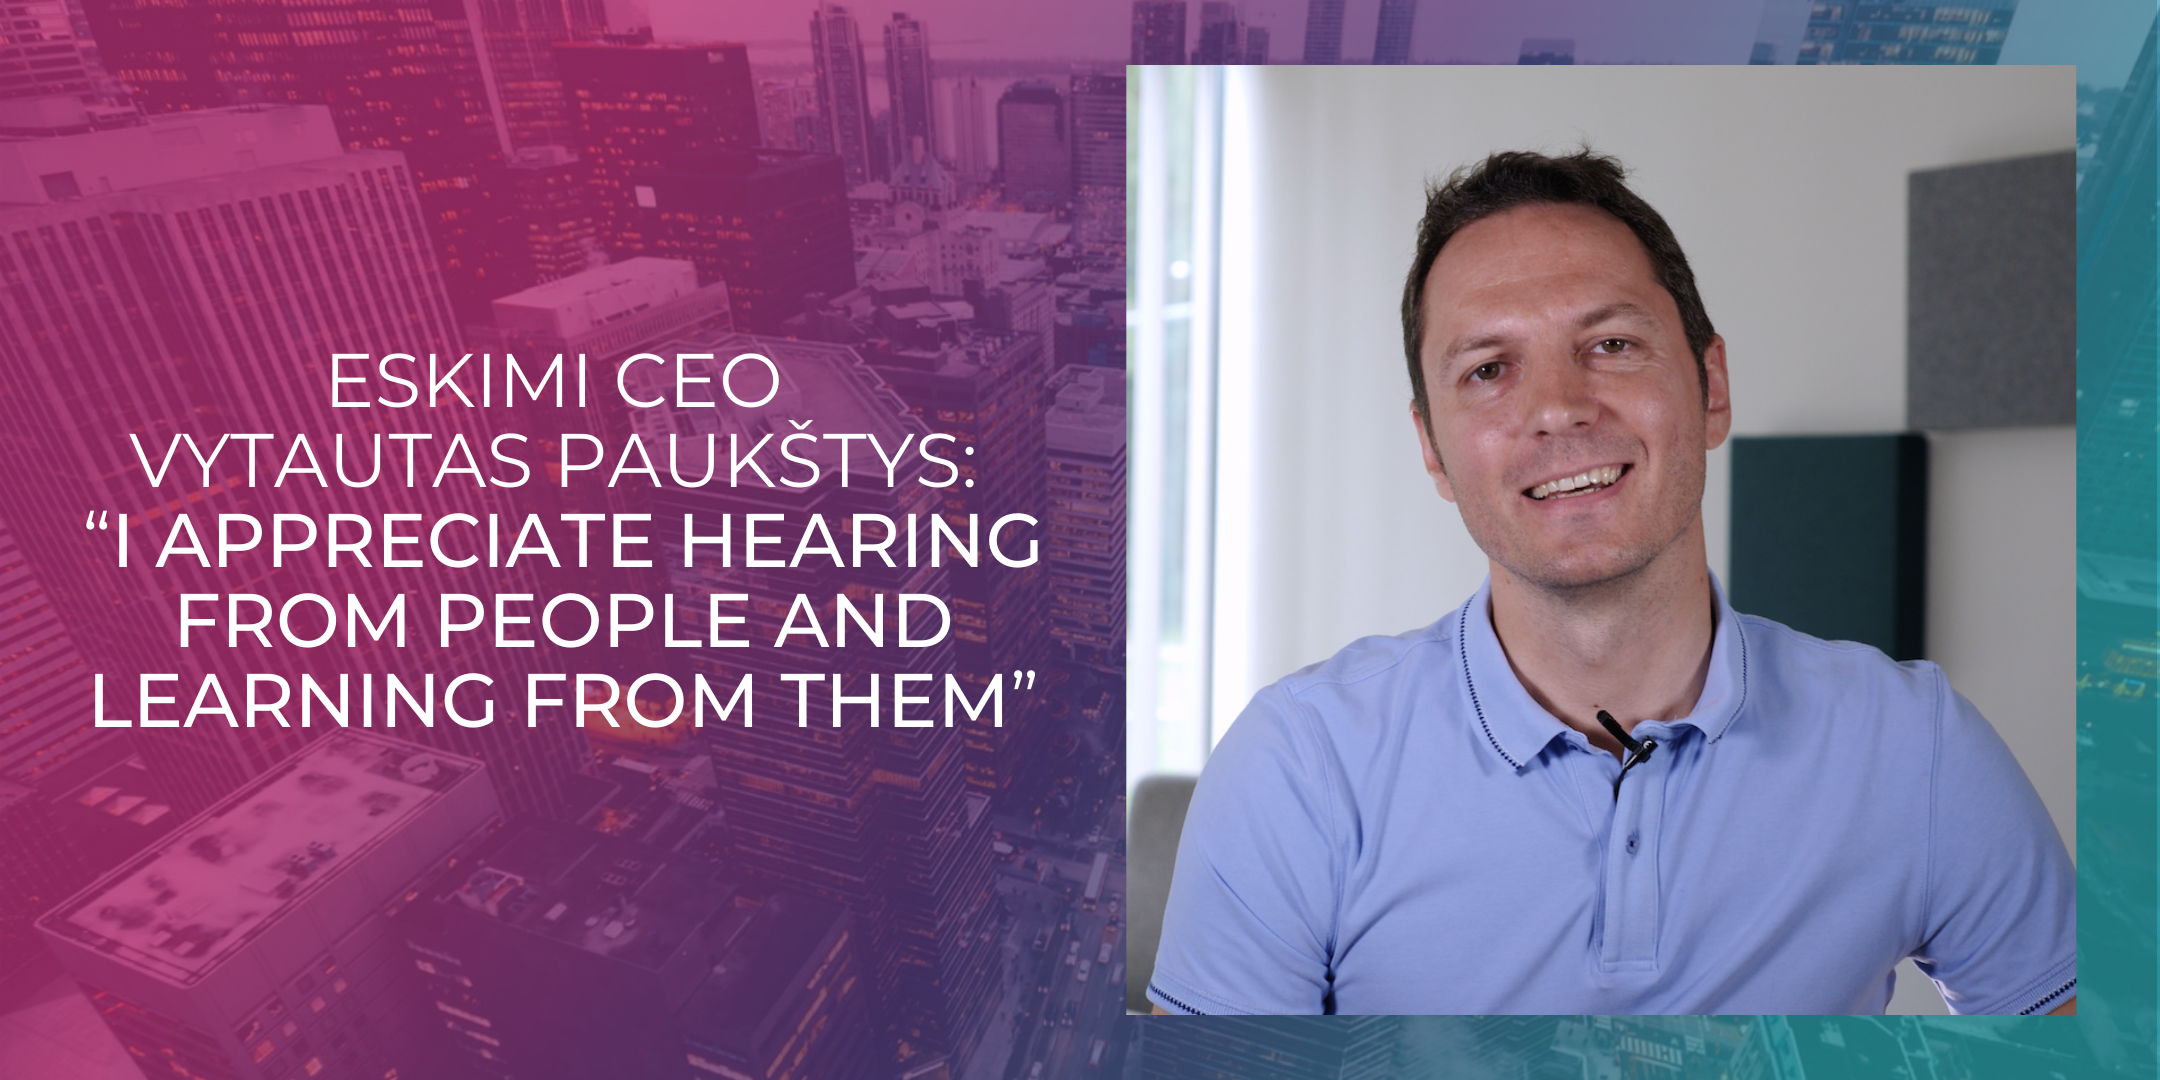 """Eskimi CEO Vytautas Paukštys: """"I appreciate hearing from people and learning from them"""""""